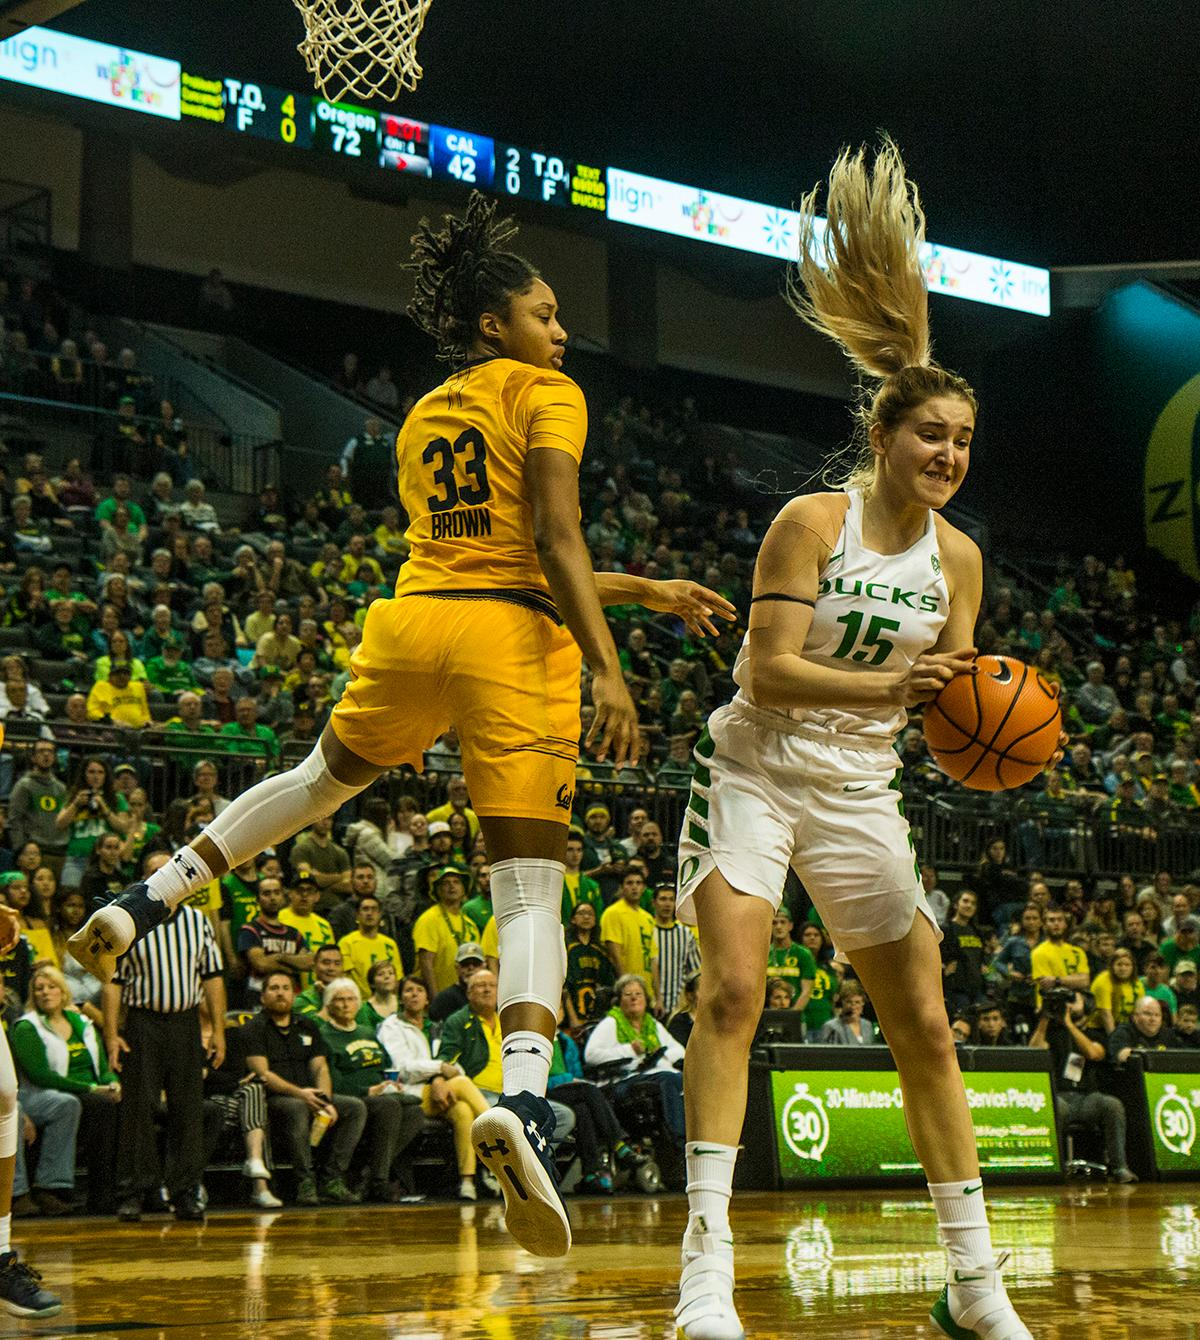 Oregon Ducks Anneli Maley (#15) comes down with a rebound away from Cal Bears Jaelyn Brown (#33). The Oregon Ducks women's team defeated the Cal Golden Bears 91-54 in Matthew Knight Arena Saturday evening. The Ducks had 3 players in double digits: Sabrina Ionescu with 28 points; Ruthy Hebard with 18 points; and Satou Sabally with 10 points. The Ducks now stand at 10-1 in conference play and Cal drops to 6-5. Photo by Kezia Setyawan, Oregon News Lab